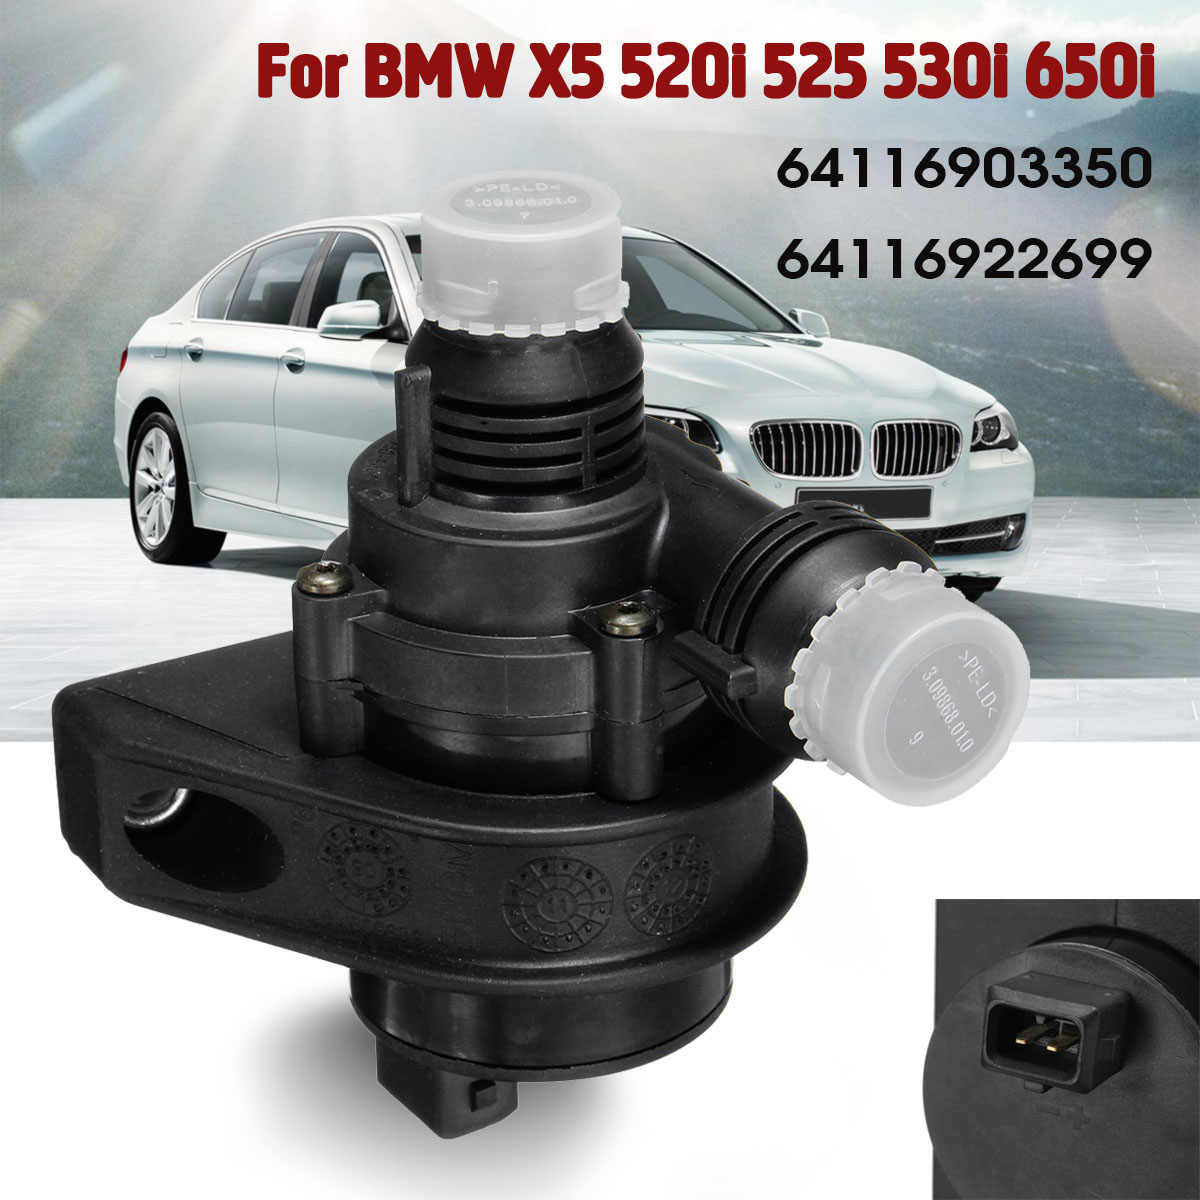 Car Engine Cooling Electric Additional Auxiliary Water Pump For BMW 5 6  Series X5 E53 E64 E60 64116903350 64116922699